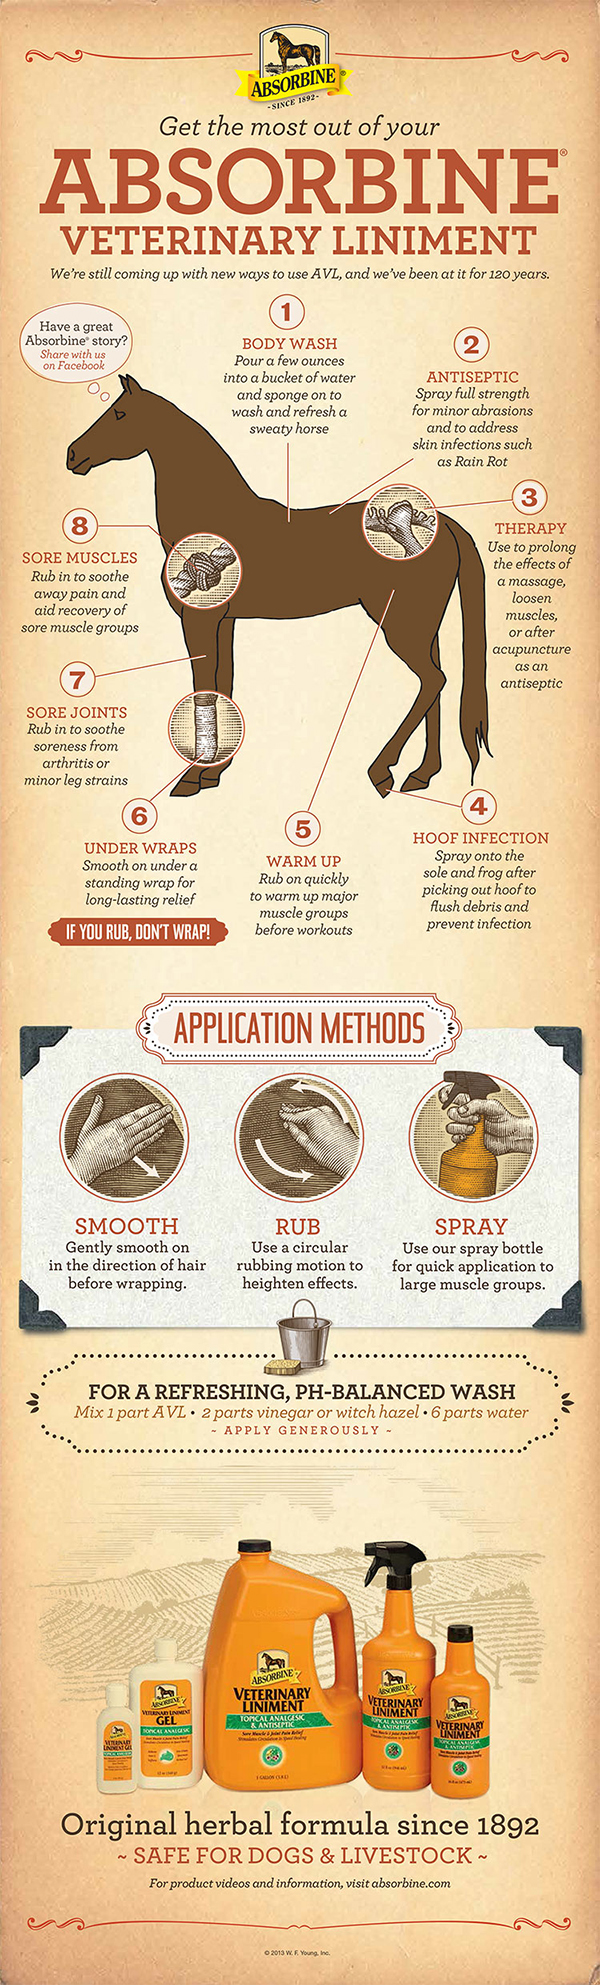 2015-11-Absorbine-Liniment-Infographic